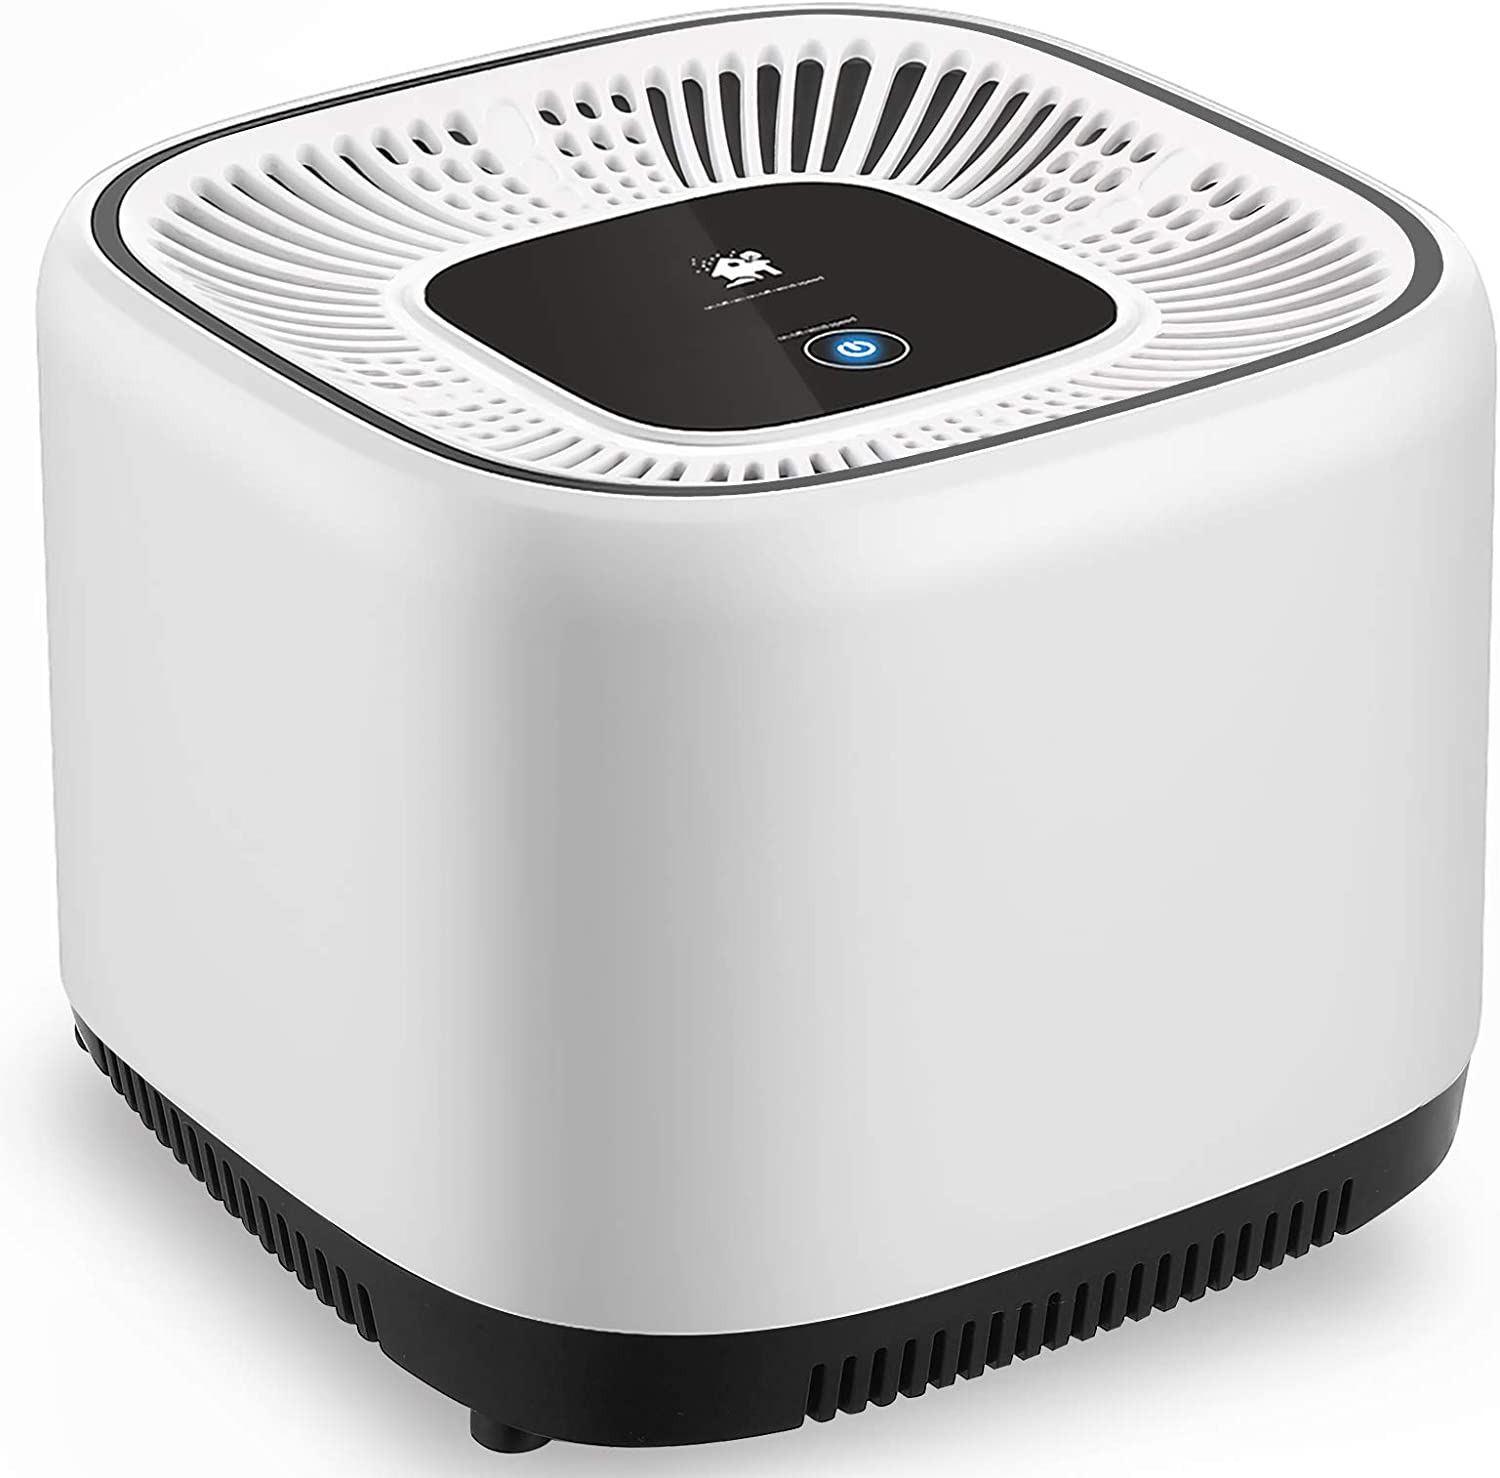 Fsdfgc Air Purifier for Home with True HEPA Filters, Low Noise Powerful Desktop Air Cleaner with 3 Stage Filtration Eliminate Smoke/Pet Dander/Pollen/Dust, Portable Air Purifiers for Bedroom, Office